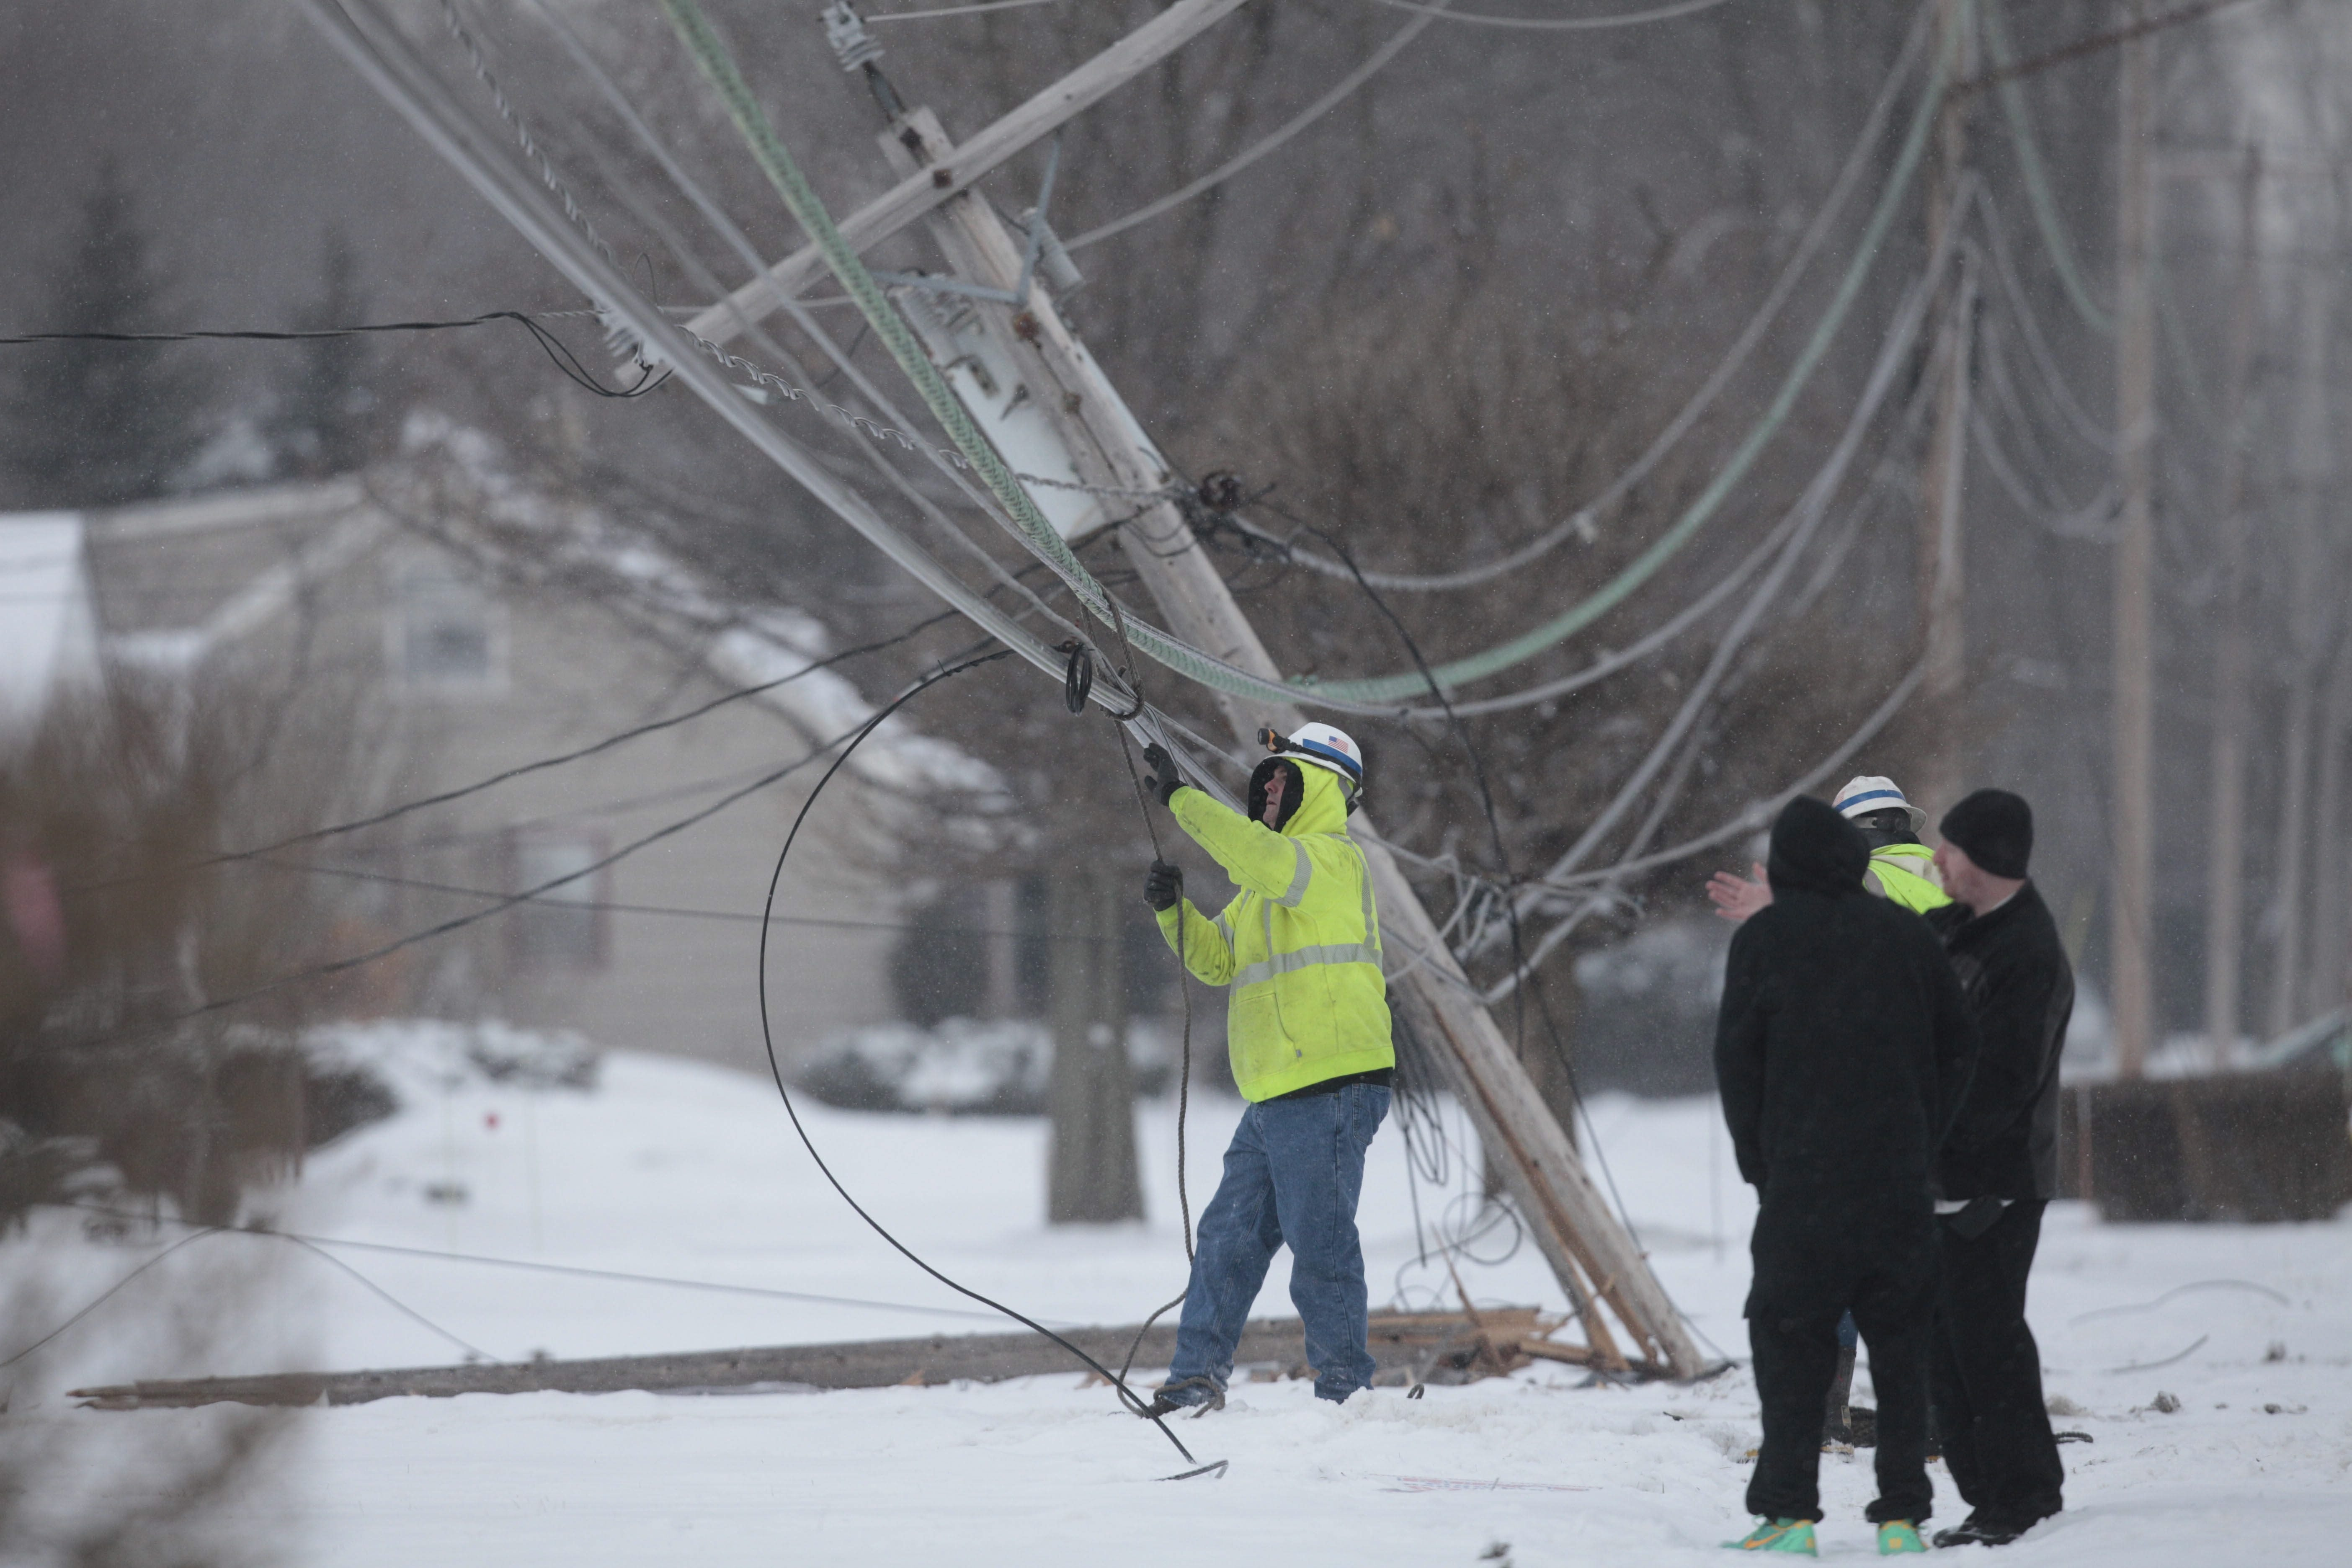 Police and utility workers respond to North French Road in Amherst after a car took out a utility pole and ended up crashing into a house causing a natural gas leak, Friday, Jan. 24, 2014.  (Derek Gee/Buffalo News)